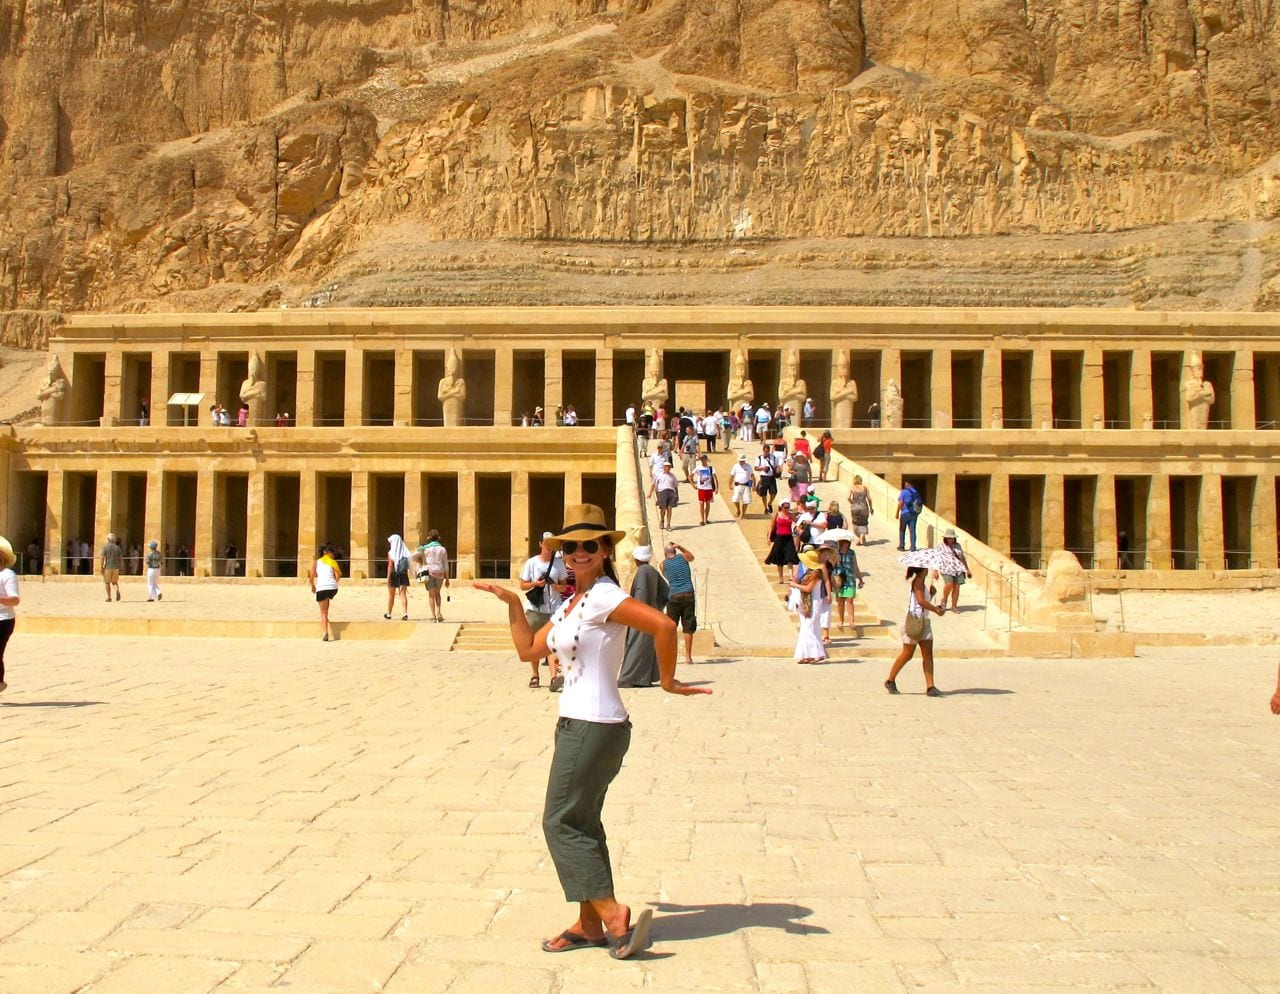 Angie Orth Walk Like an Egyptian Hatshepsut Luxor Egypt